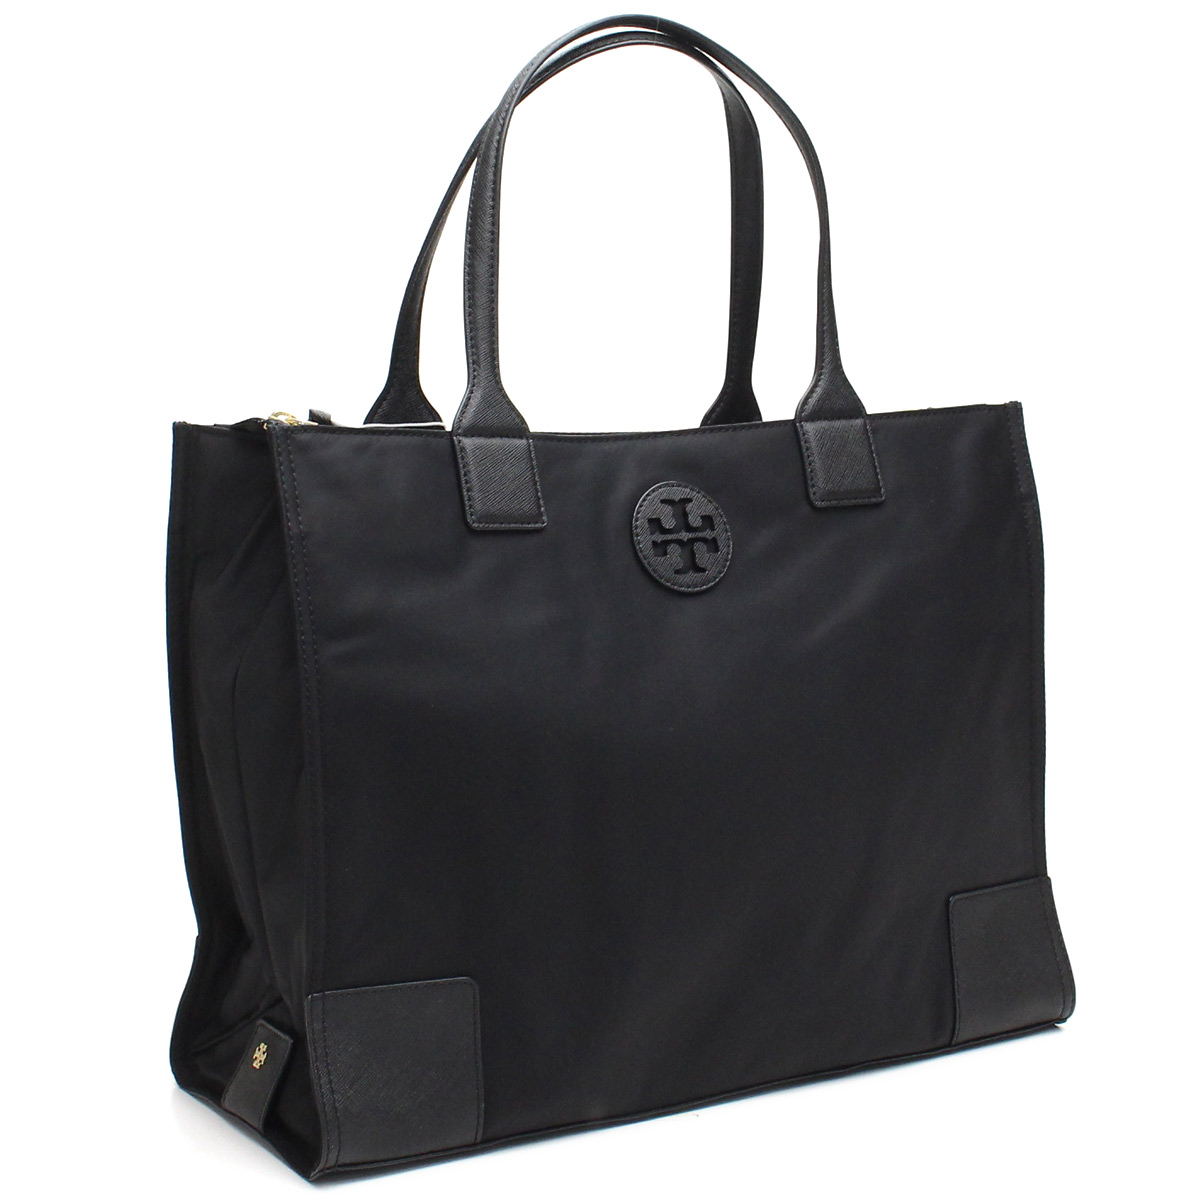 4b8f547d7b81 Bighit The total brand wholesale  Tory Burch (TORY BURCH) ELLA PACKABLE  tote bag 41159800-001 BLACK black( taxfree send by EMS authentic A brand  new item ) ...